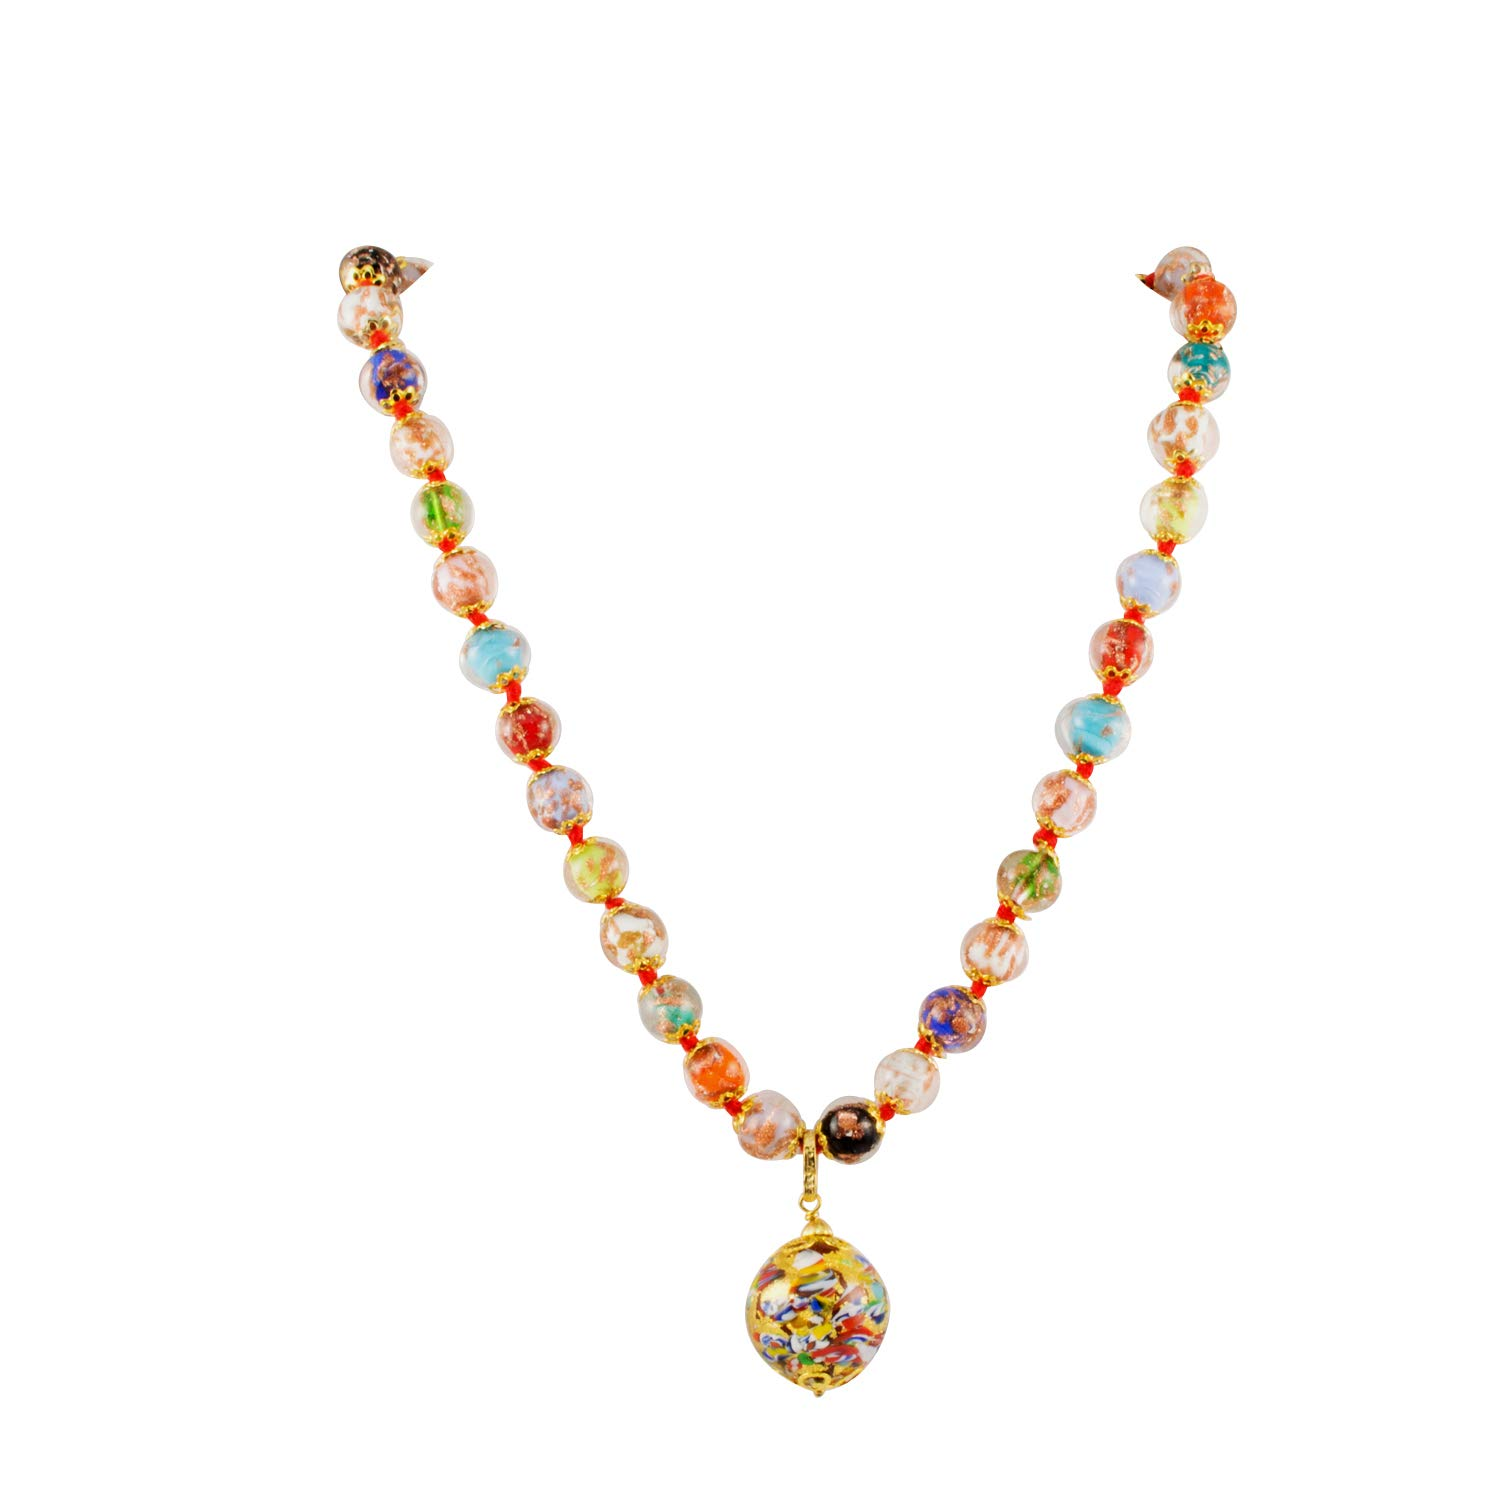 Just Give Me Jewels Venice Murano Sommerso Aventurina Glass Bead Strand Klimt Ball Pendant Necklace in Multicolor